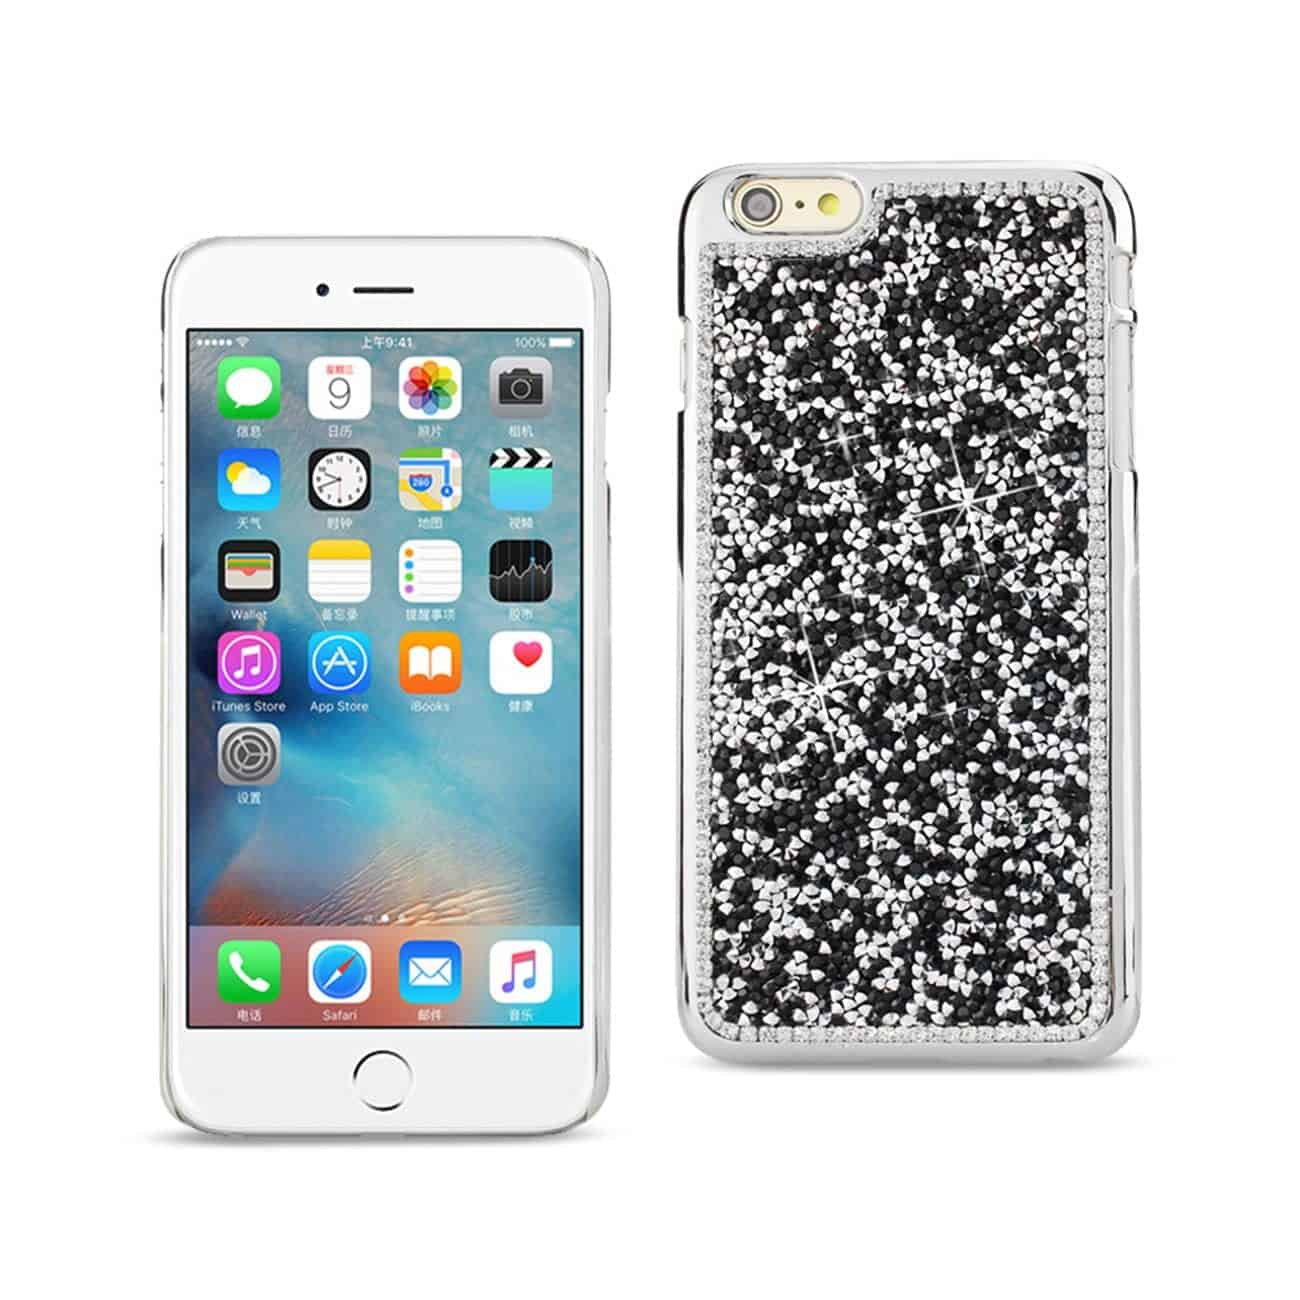 IPHONE 6S/ IPHONE 6 JEWELRY BLING RHINESTONE CASE IN BLACK